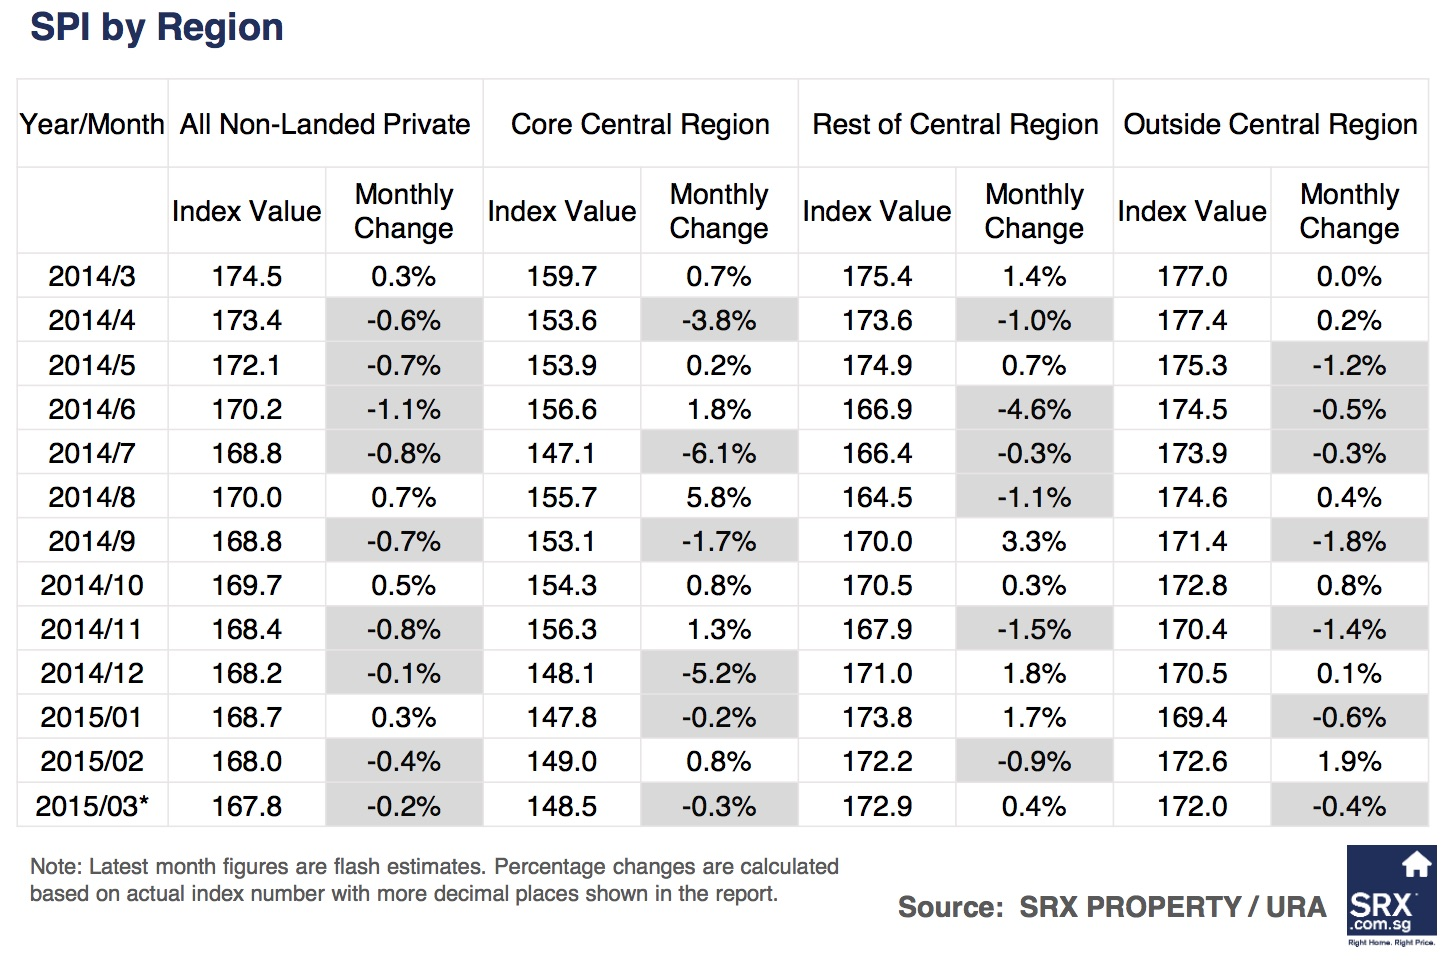 Singapore Price Index: Resale price dipped, volume up from February - Comparison by Region